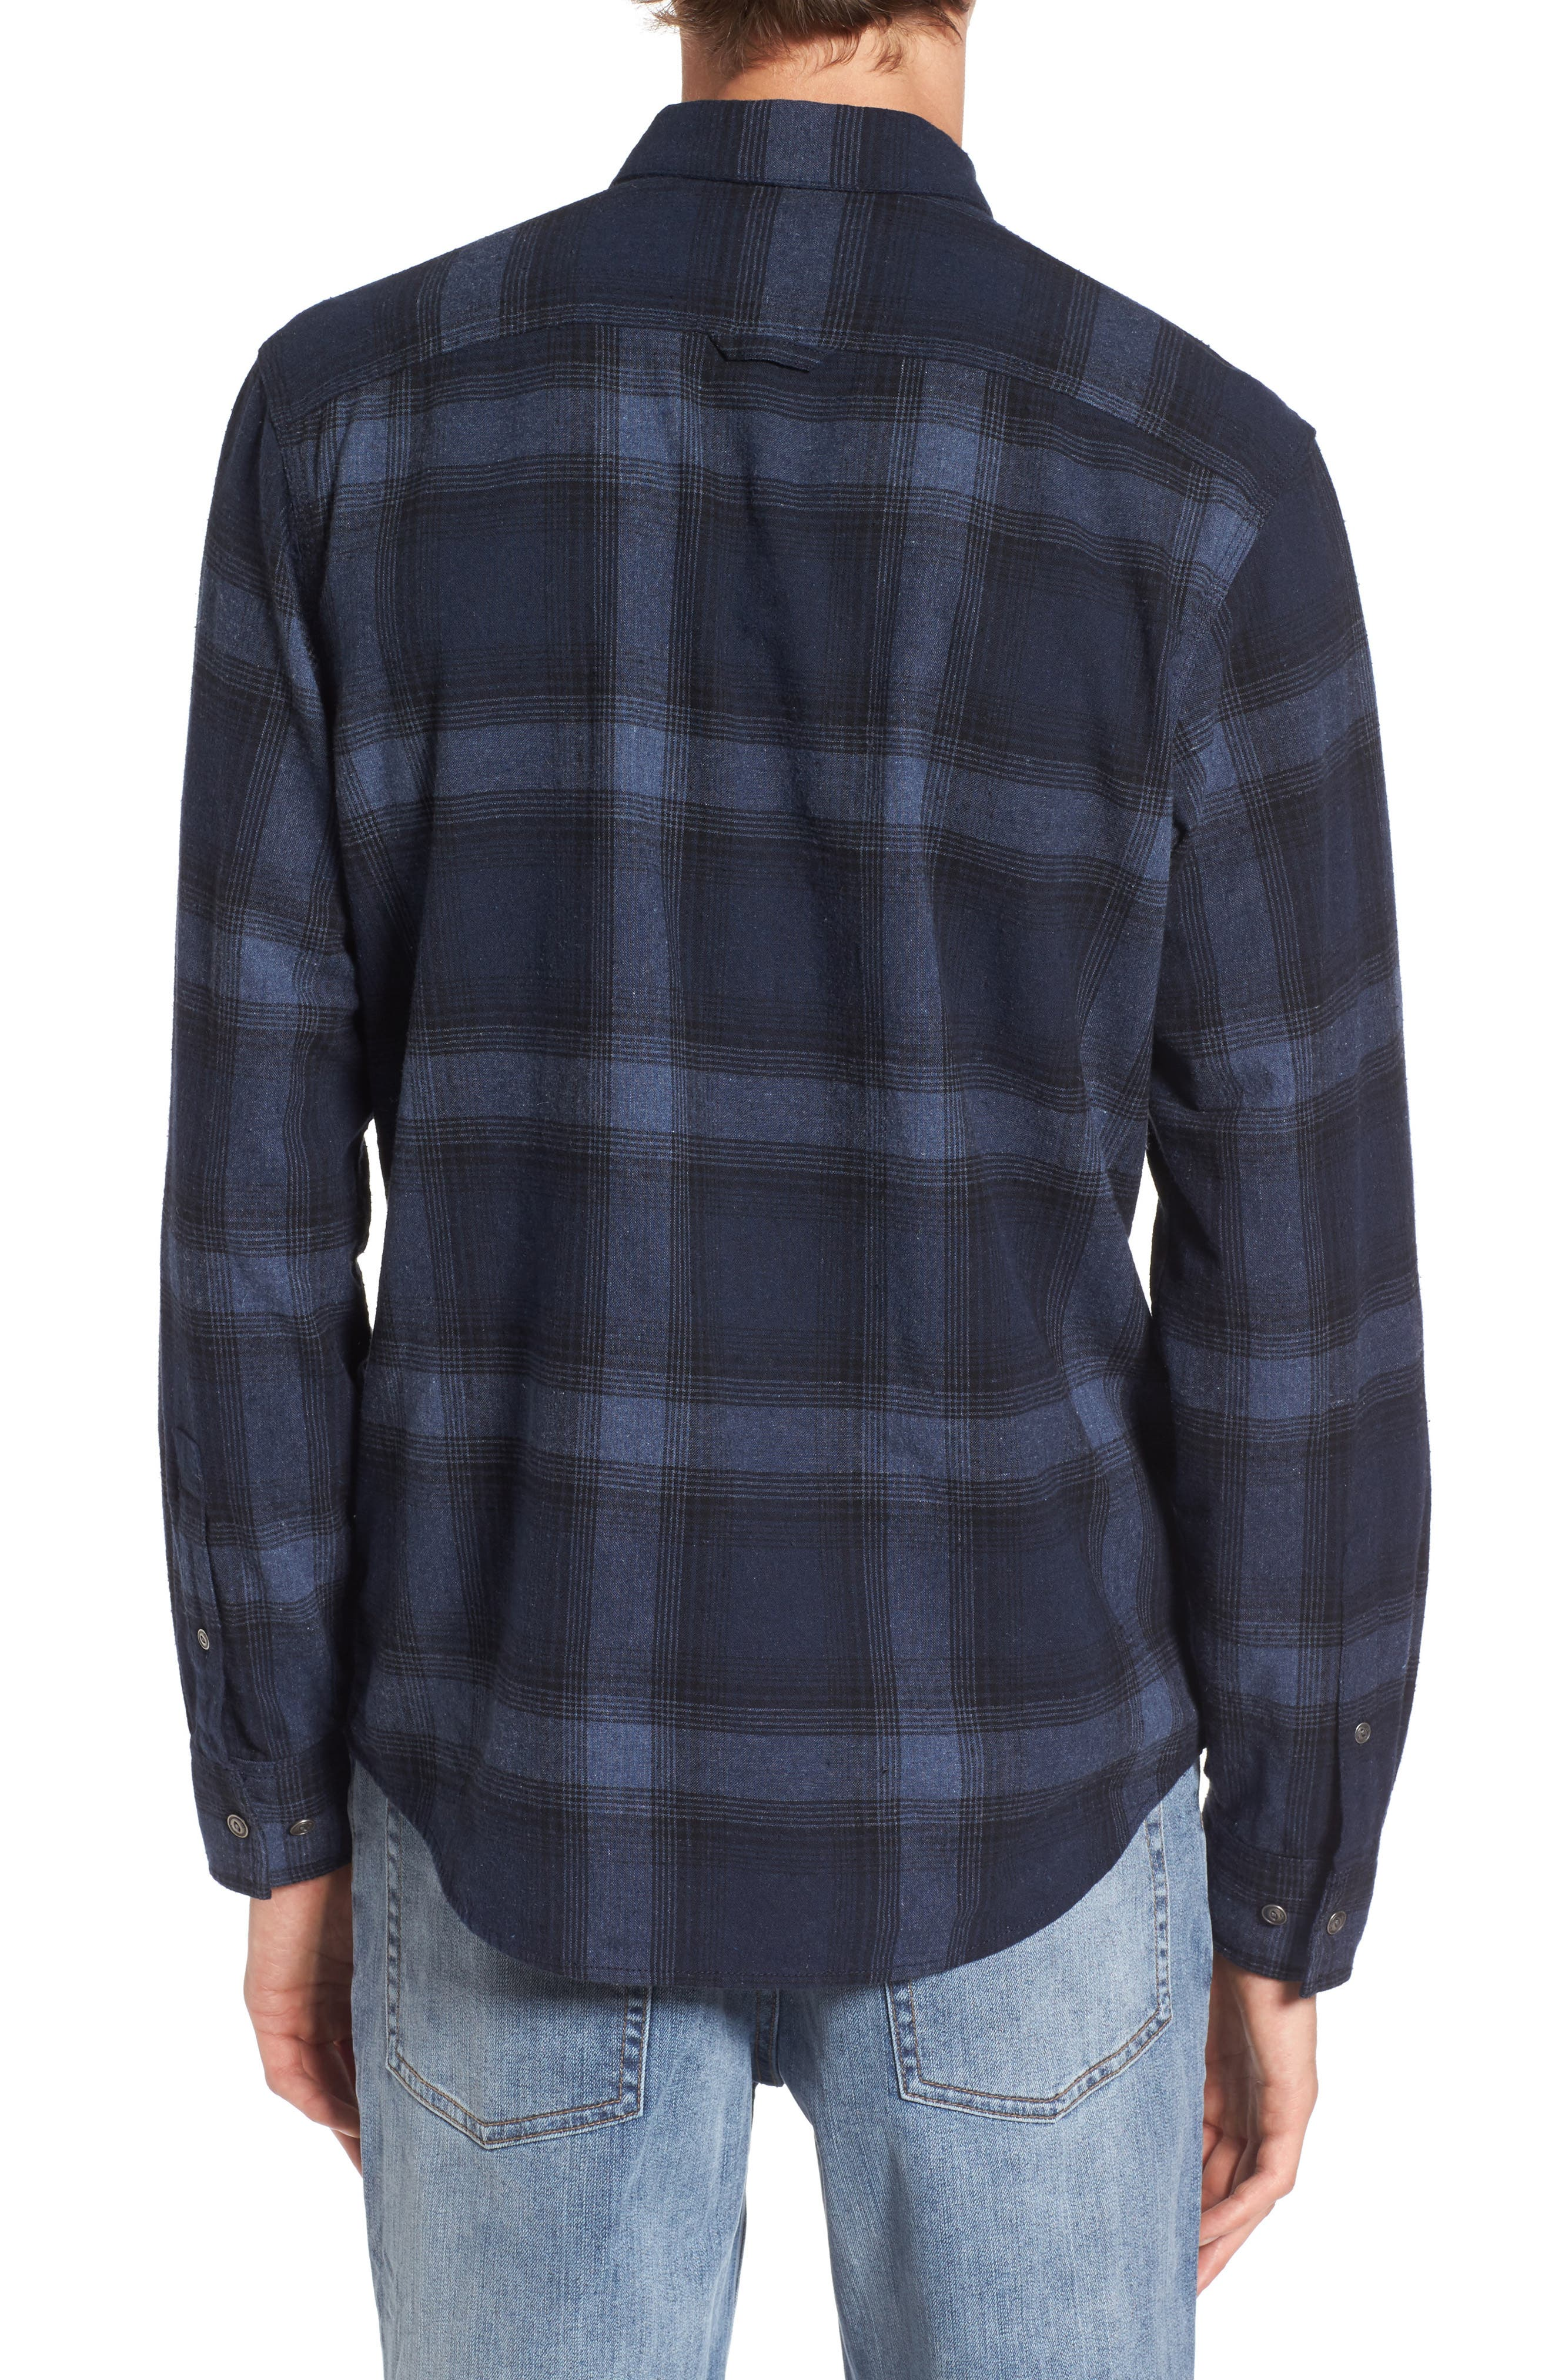 Owen Plaid Flannel Sport Shirt,                             Alternate thumbnail 2, color,                             410